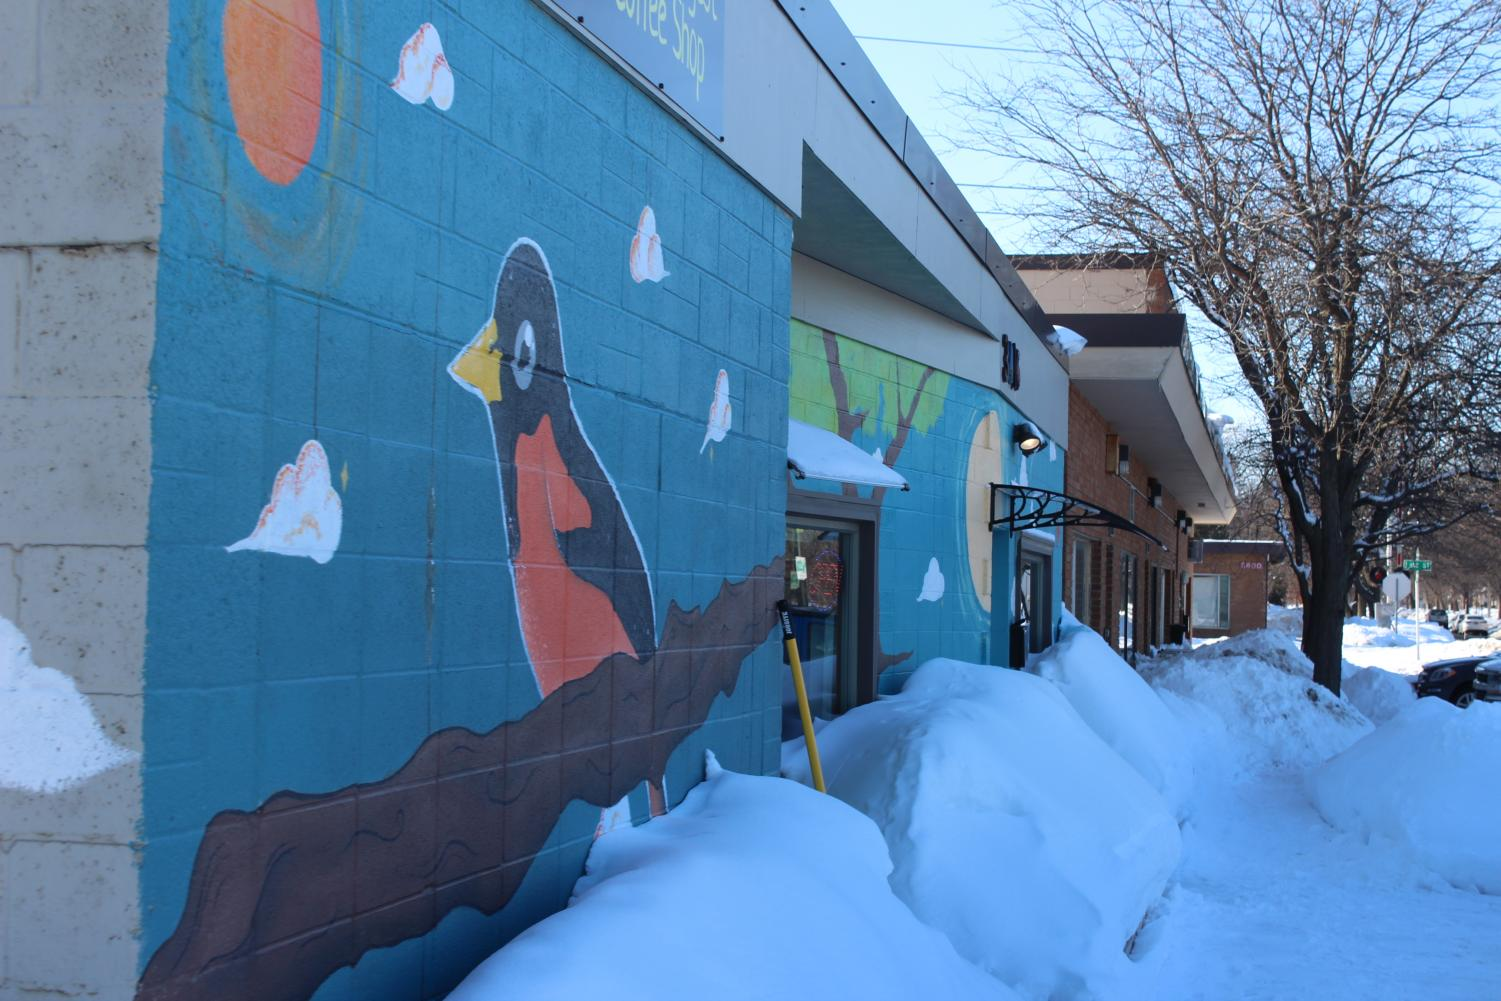 The SLP Nest was closed March 5-6 because of frozen pipes from water damage during the winter months. The SLP Nest fixed the problem and are now back open and have recently expanded their hours to Saturdays 8 a.m. to 5 p.m.